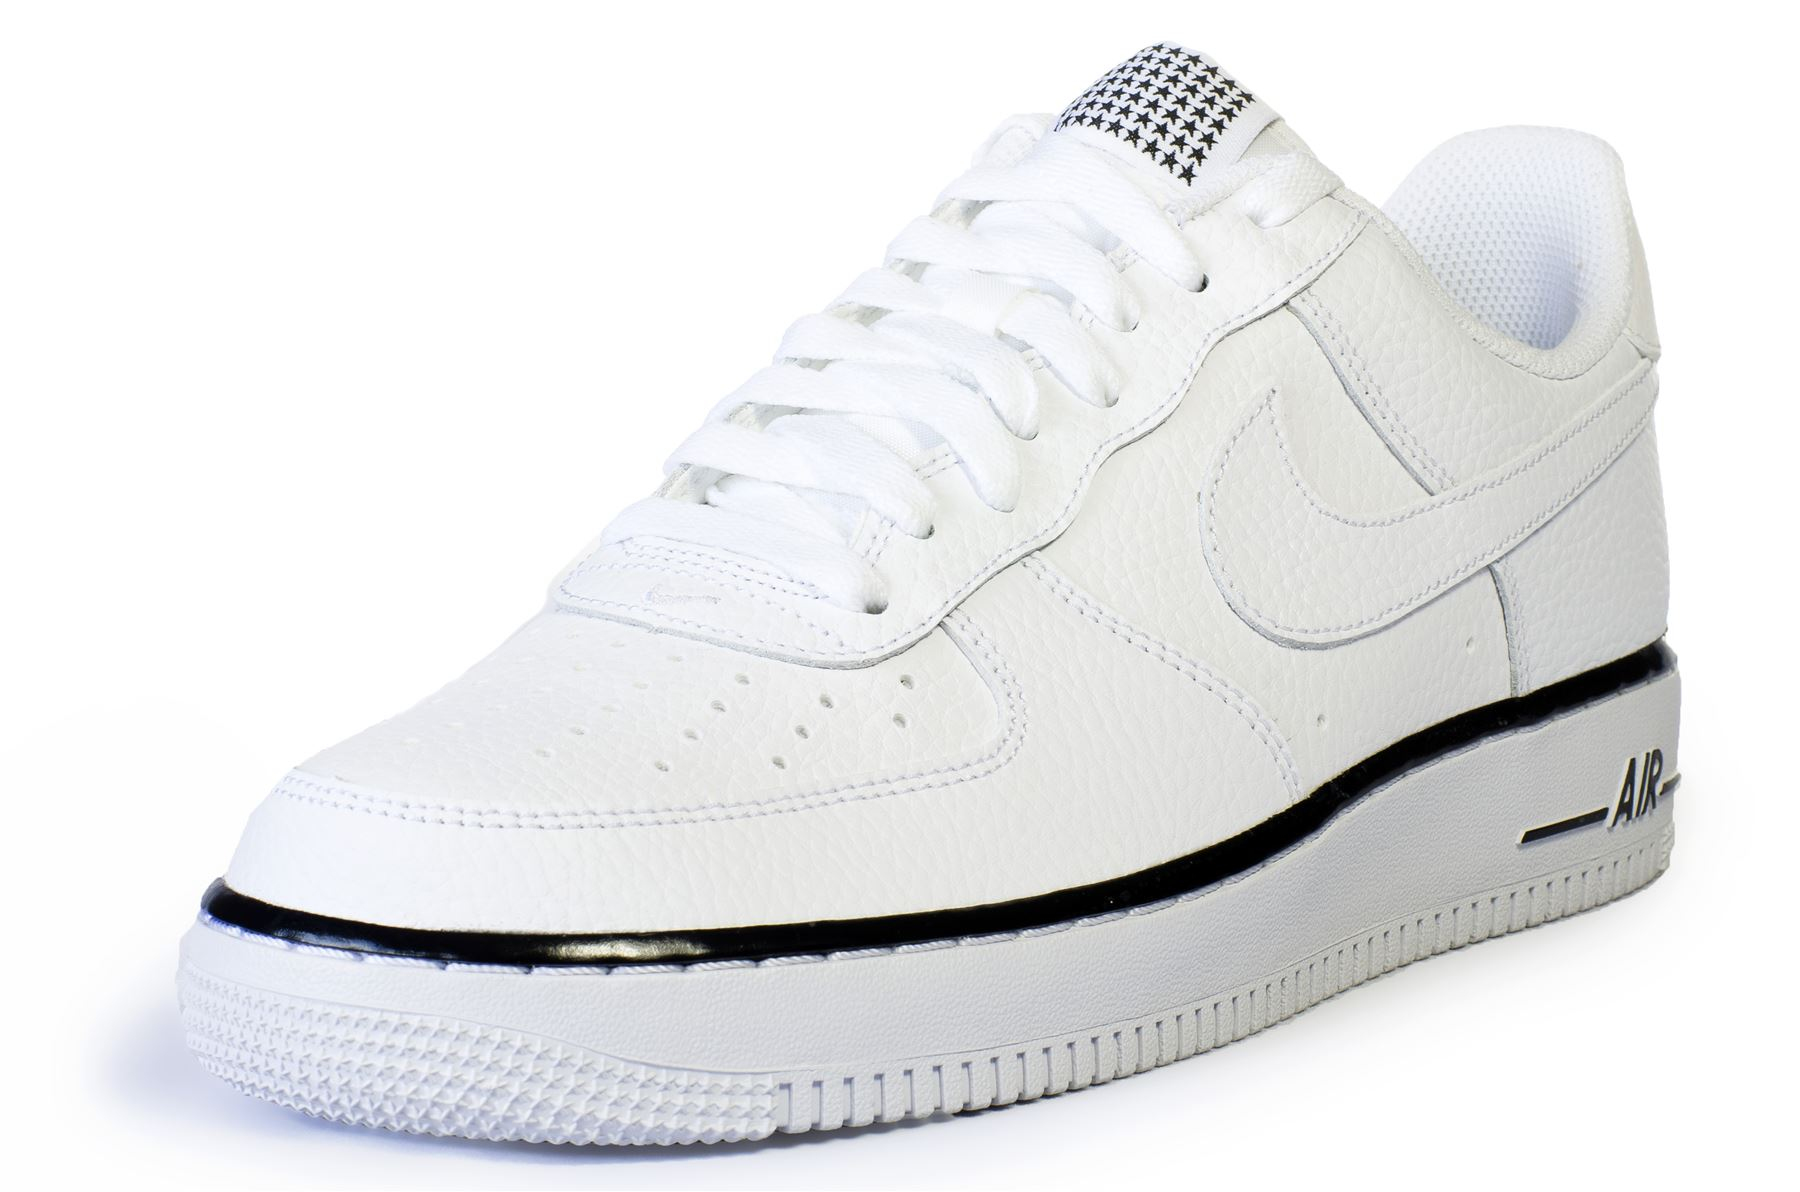 new style 7e044 f2928 Mens-Nike-Air-Force-1-039-07-Leather-